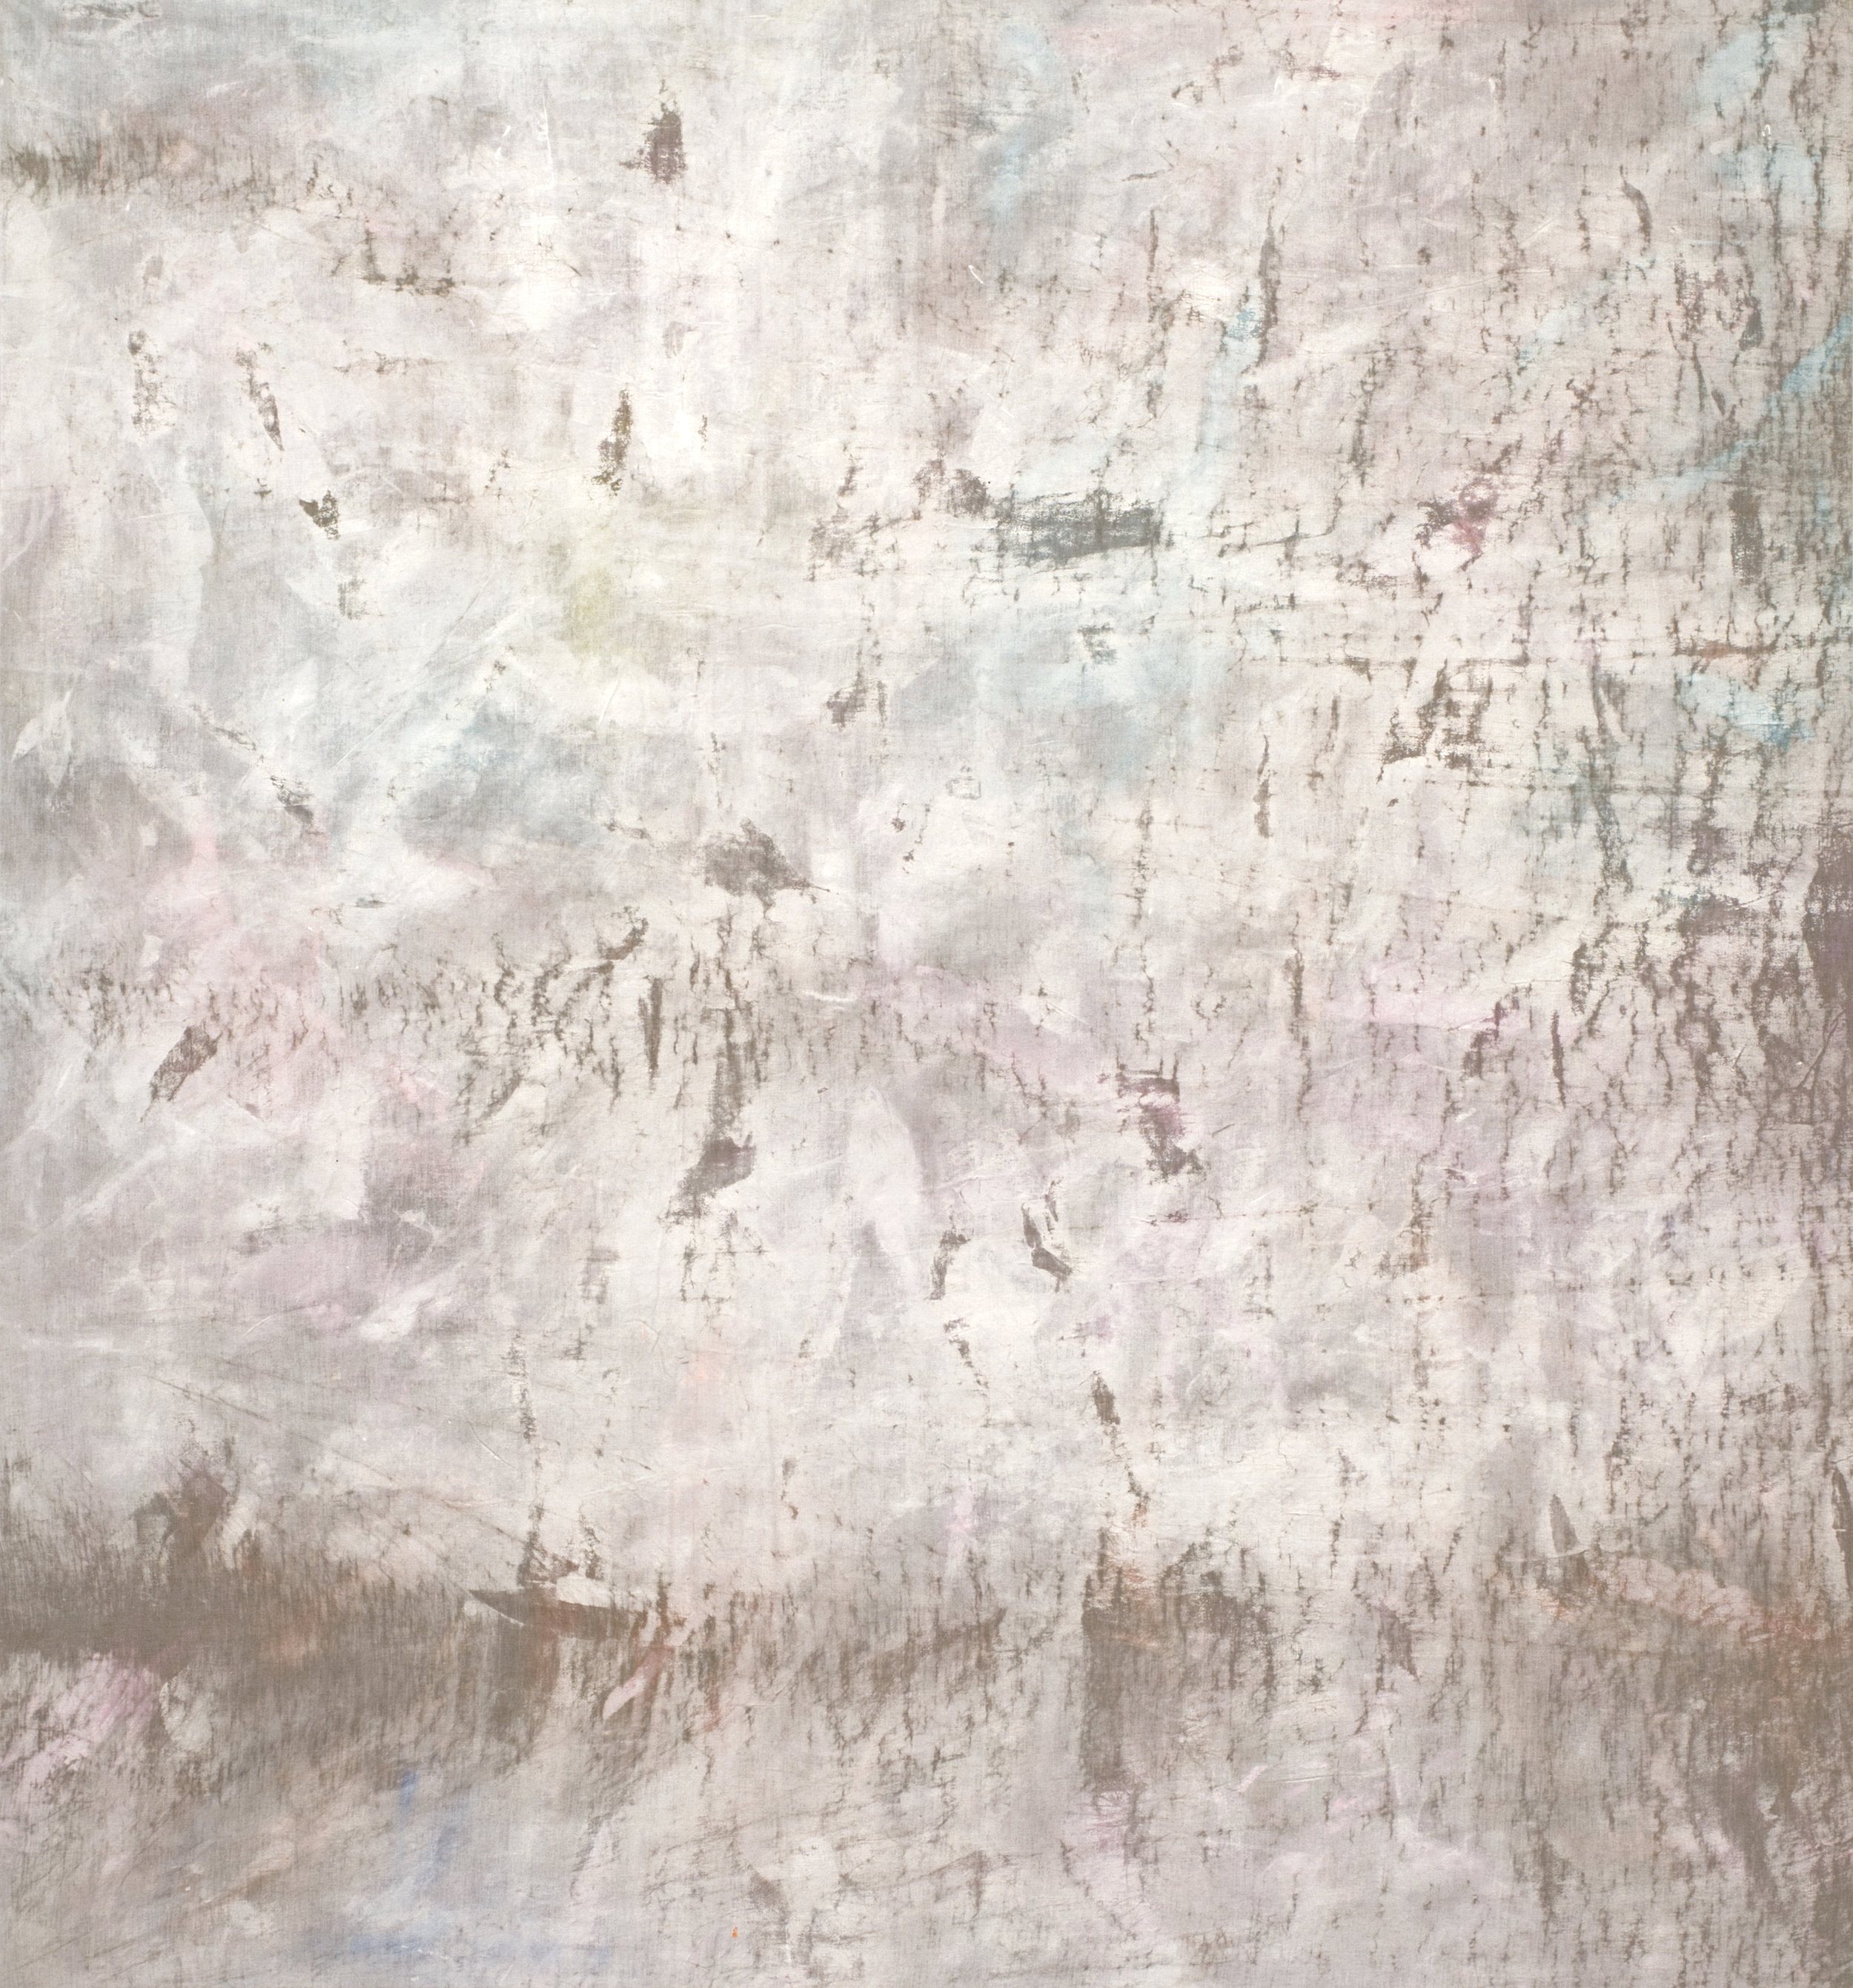 """upon occasion the dreams fought through  2018 mixed media on linen 84 x 78""""   INQUIRE"""